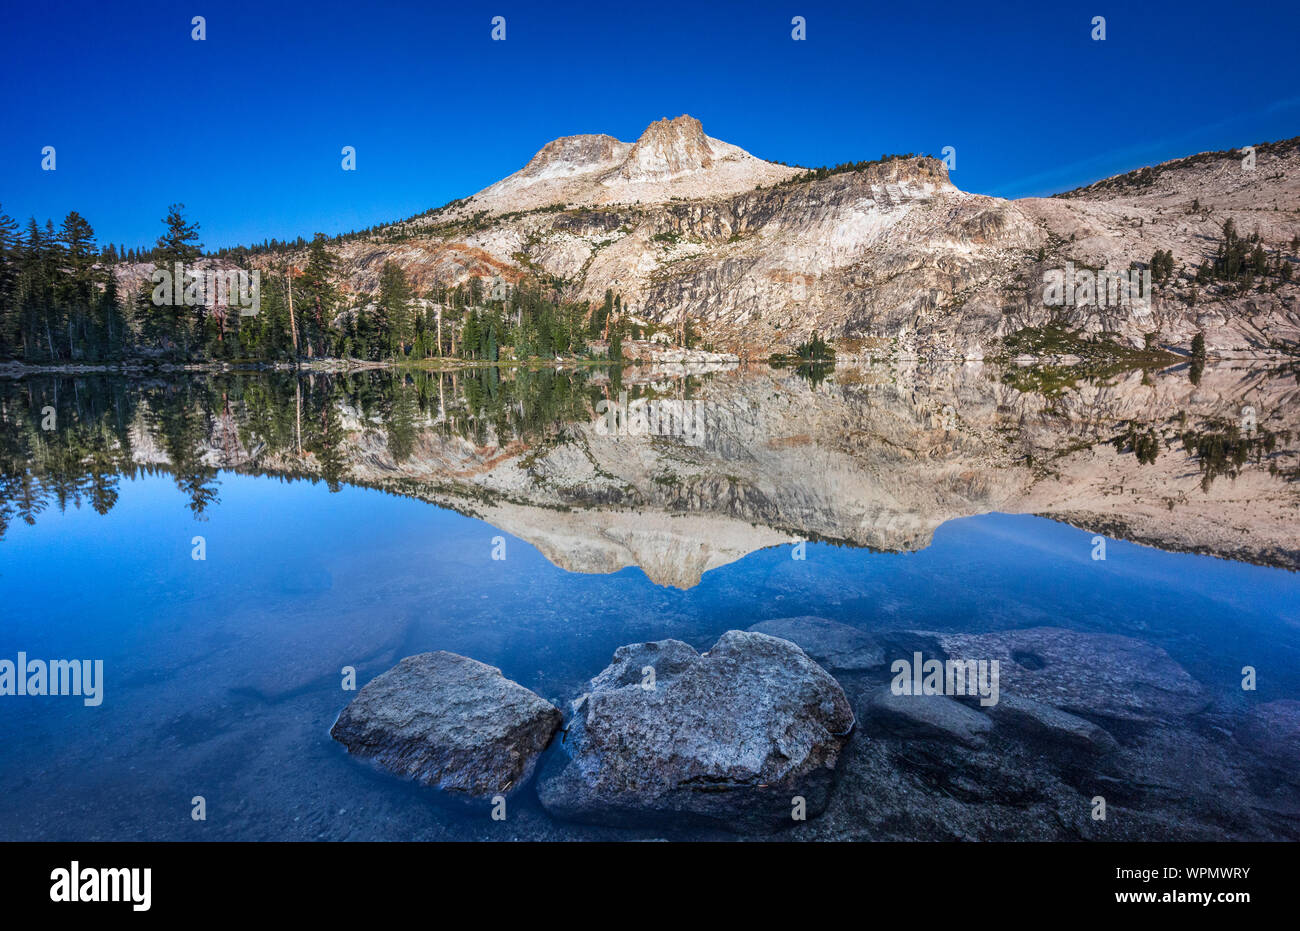 Scenic View Of Lake Against Blue Sky Stock Photo